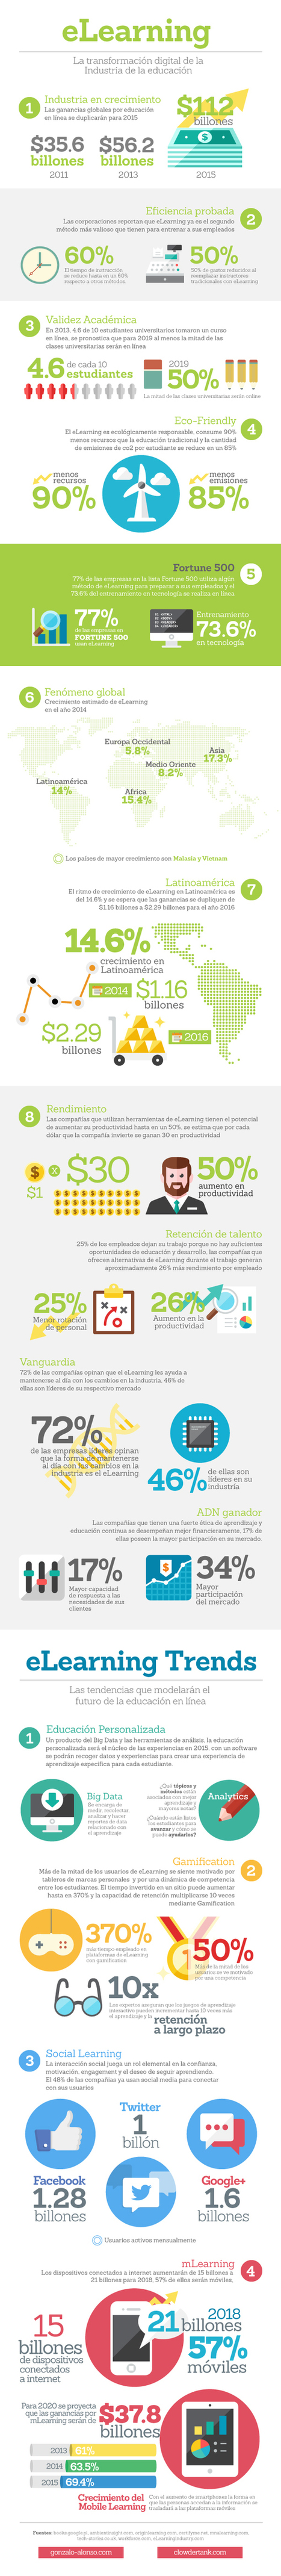 eLearning: transformación digital de la Educación #infografia #infographic #education | Formación y recursos para formación | Scoop.it